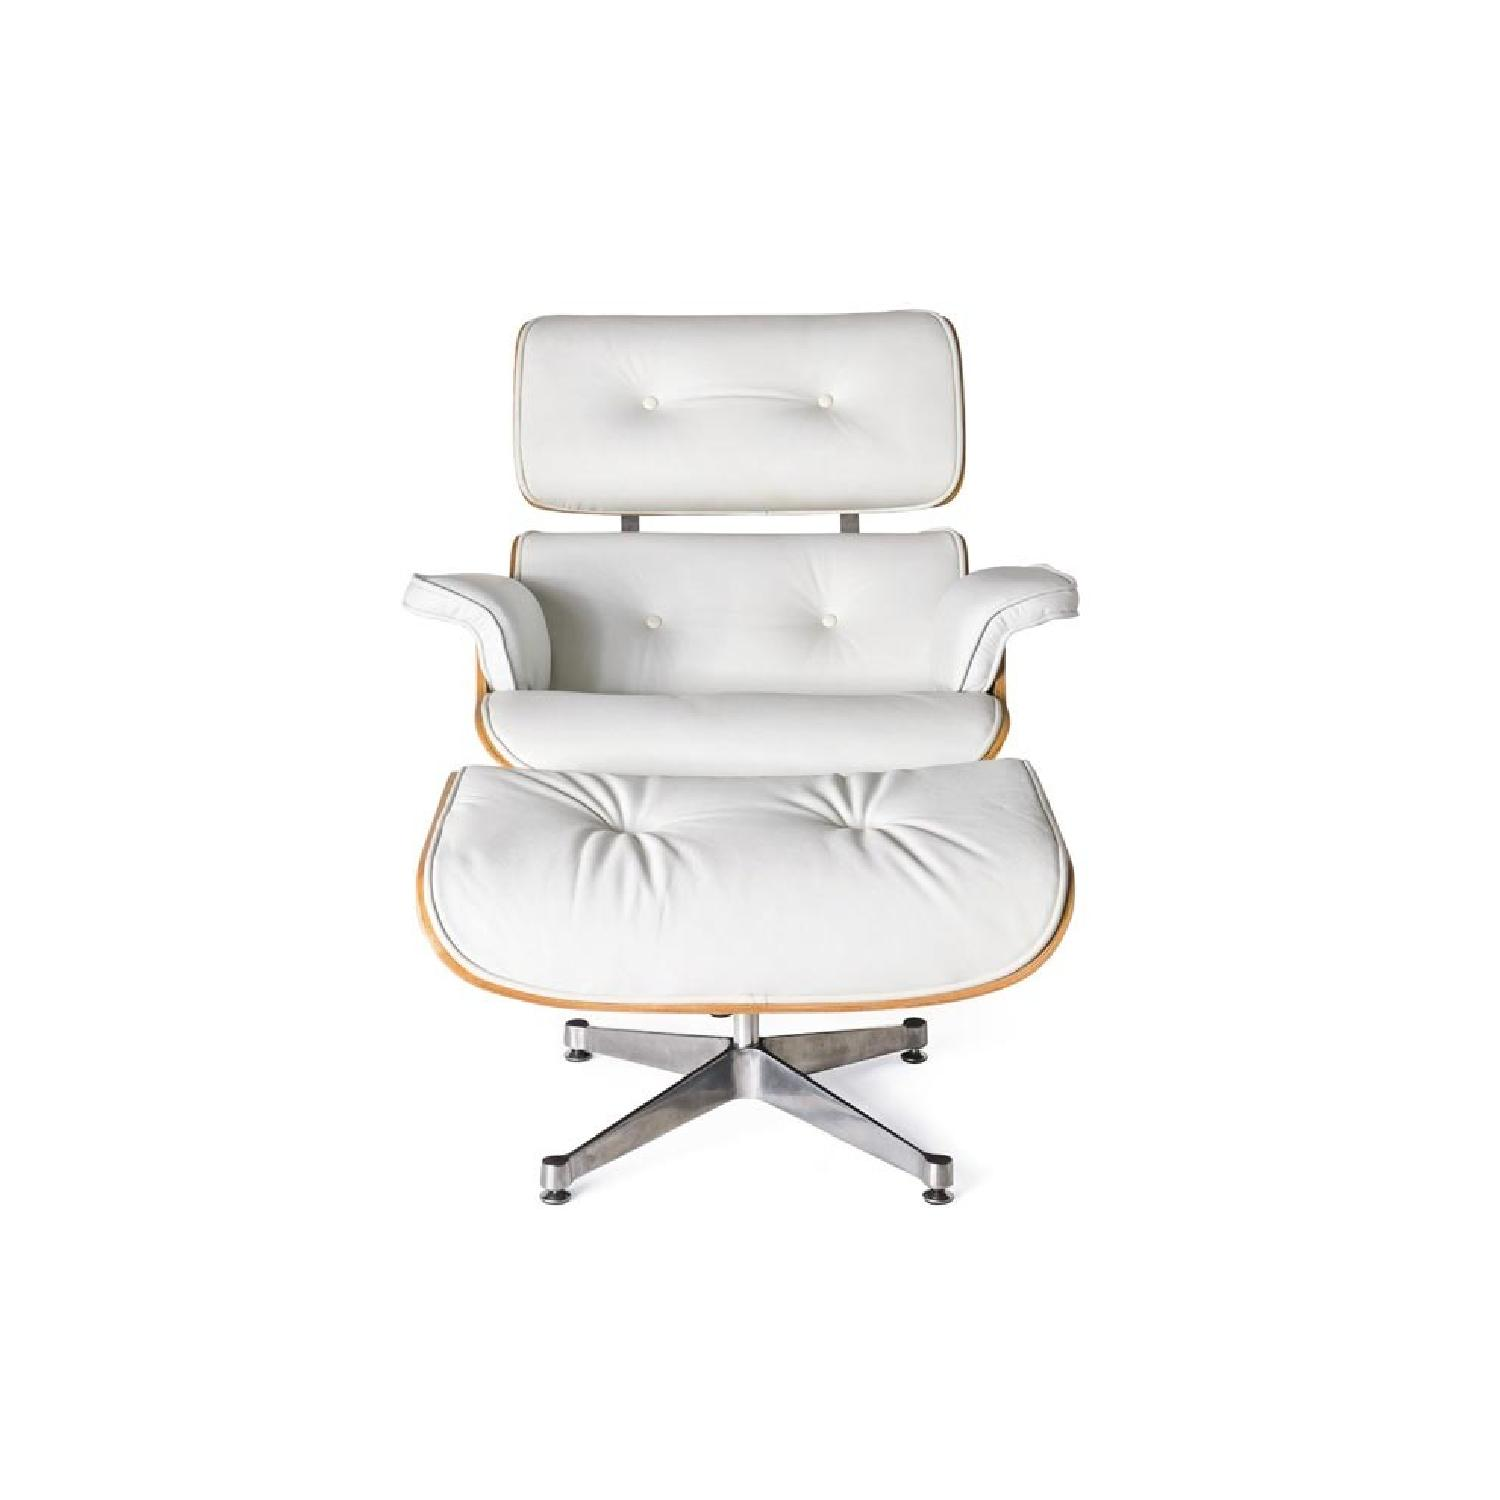 white eames lounge chair replica infinity it 8500 massage in aptdeco